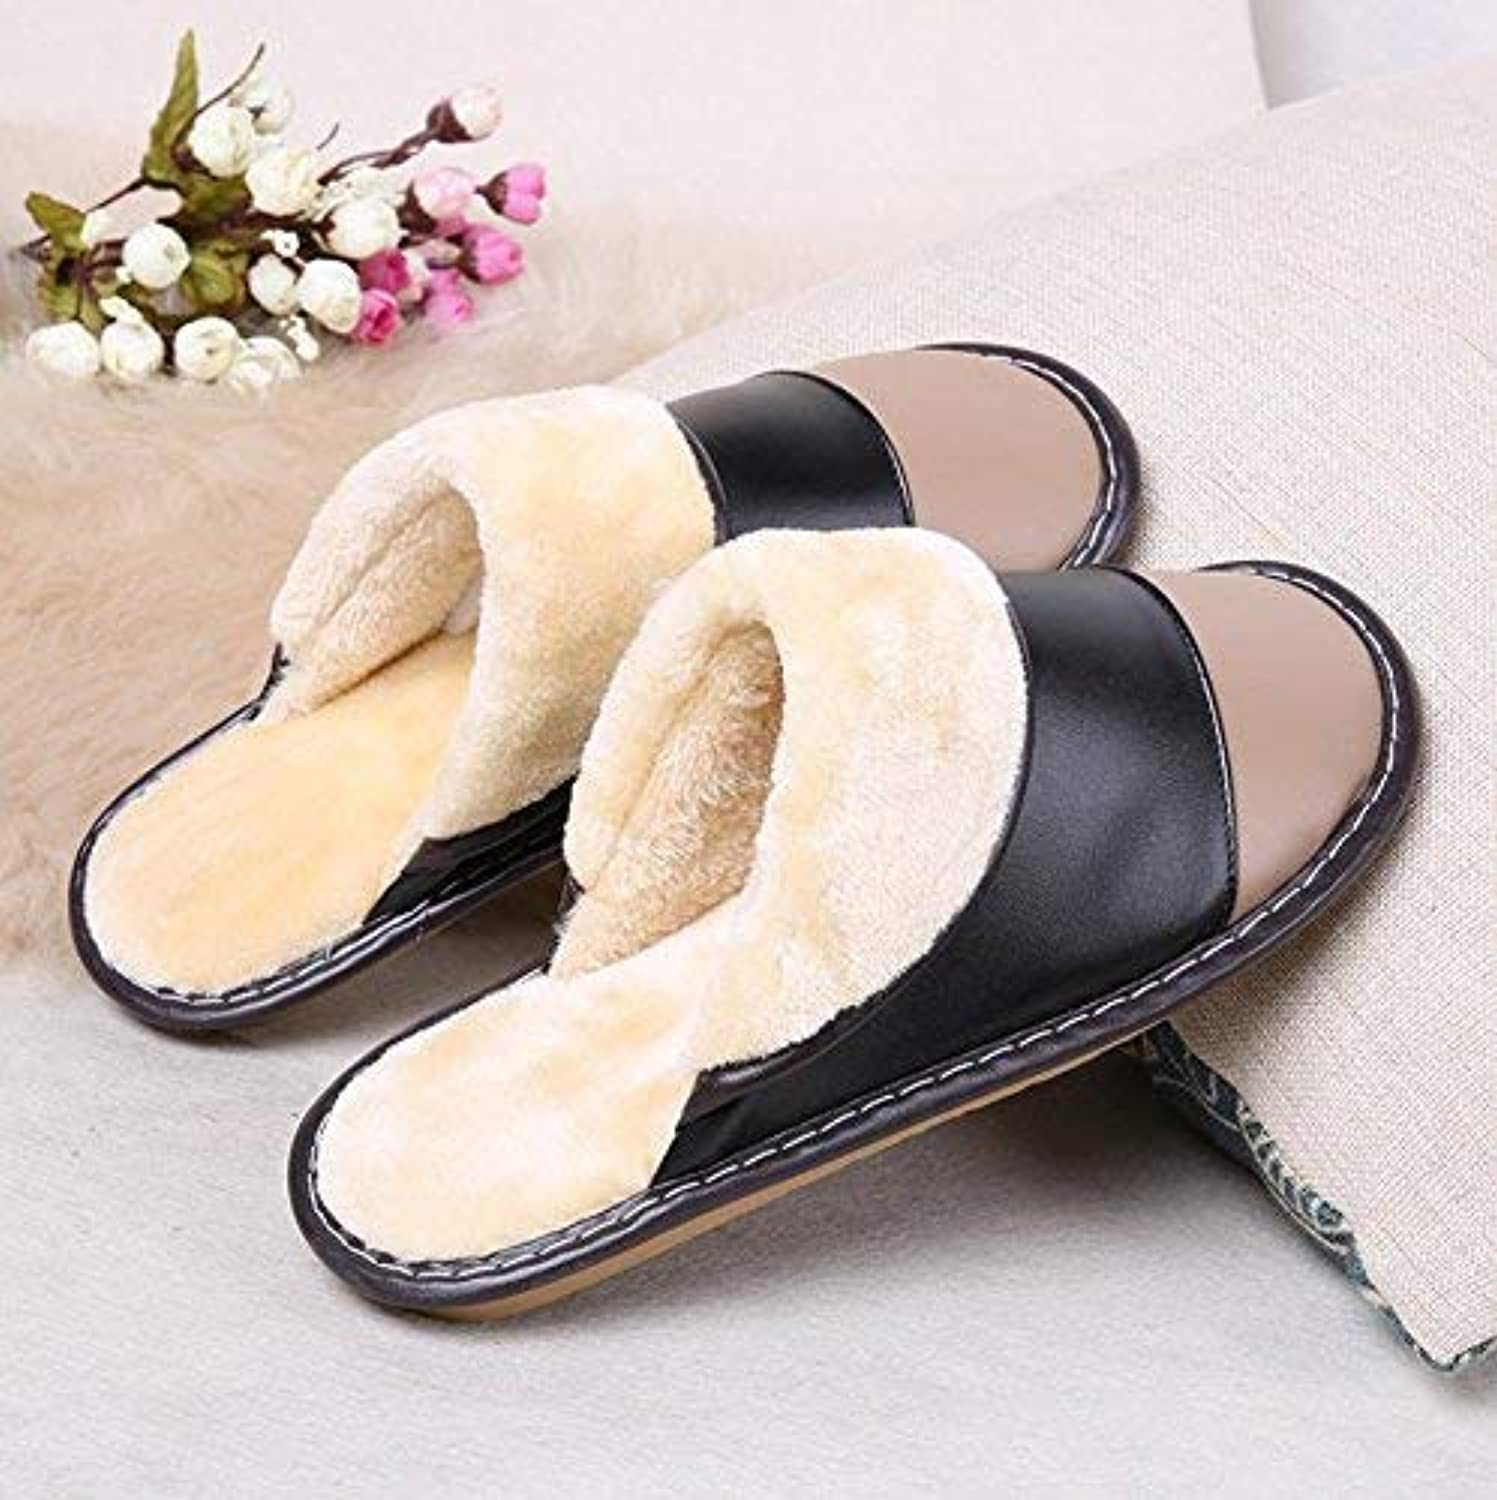 Men's Home Slippers Indoor Warm Artificial Leather Slippers Patchwork color Super Soft Plush Casual Comfortable Wild Slippers